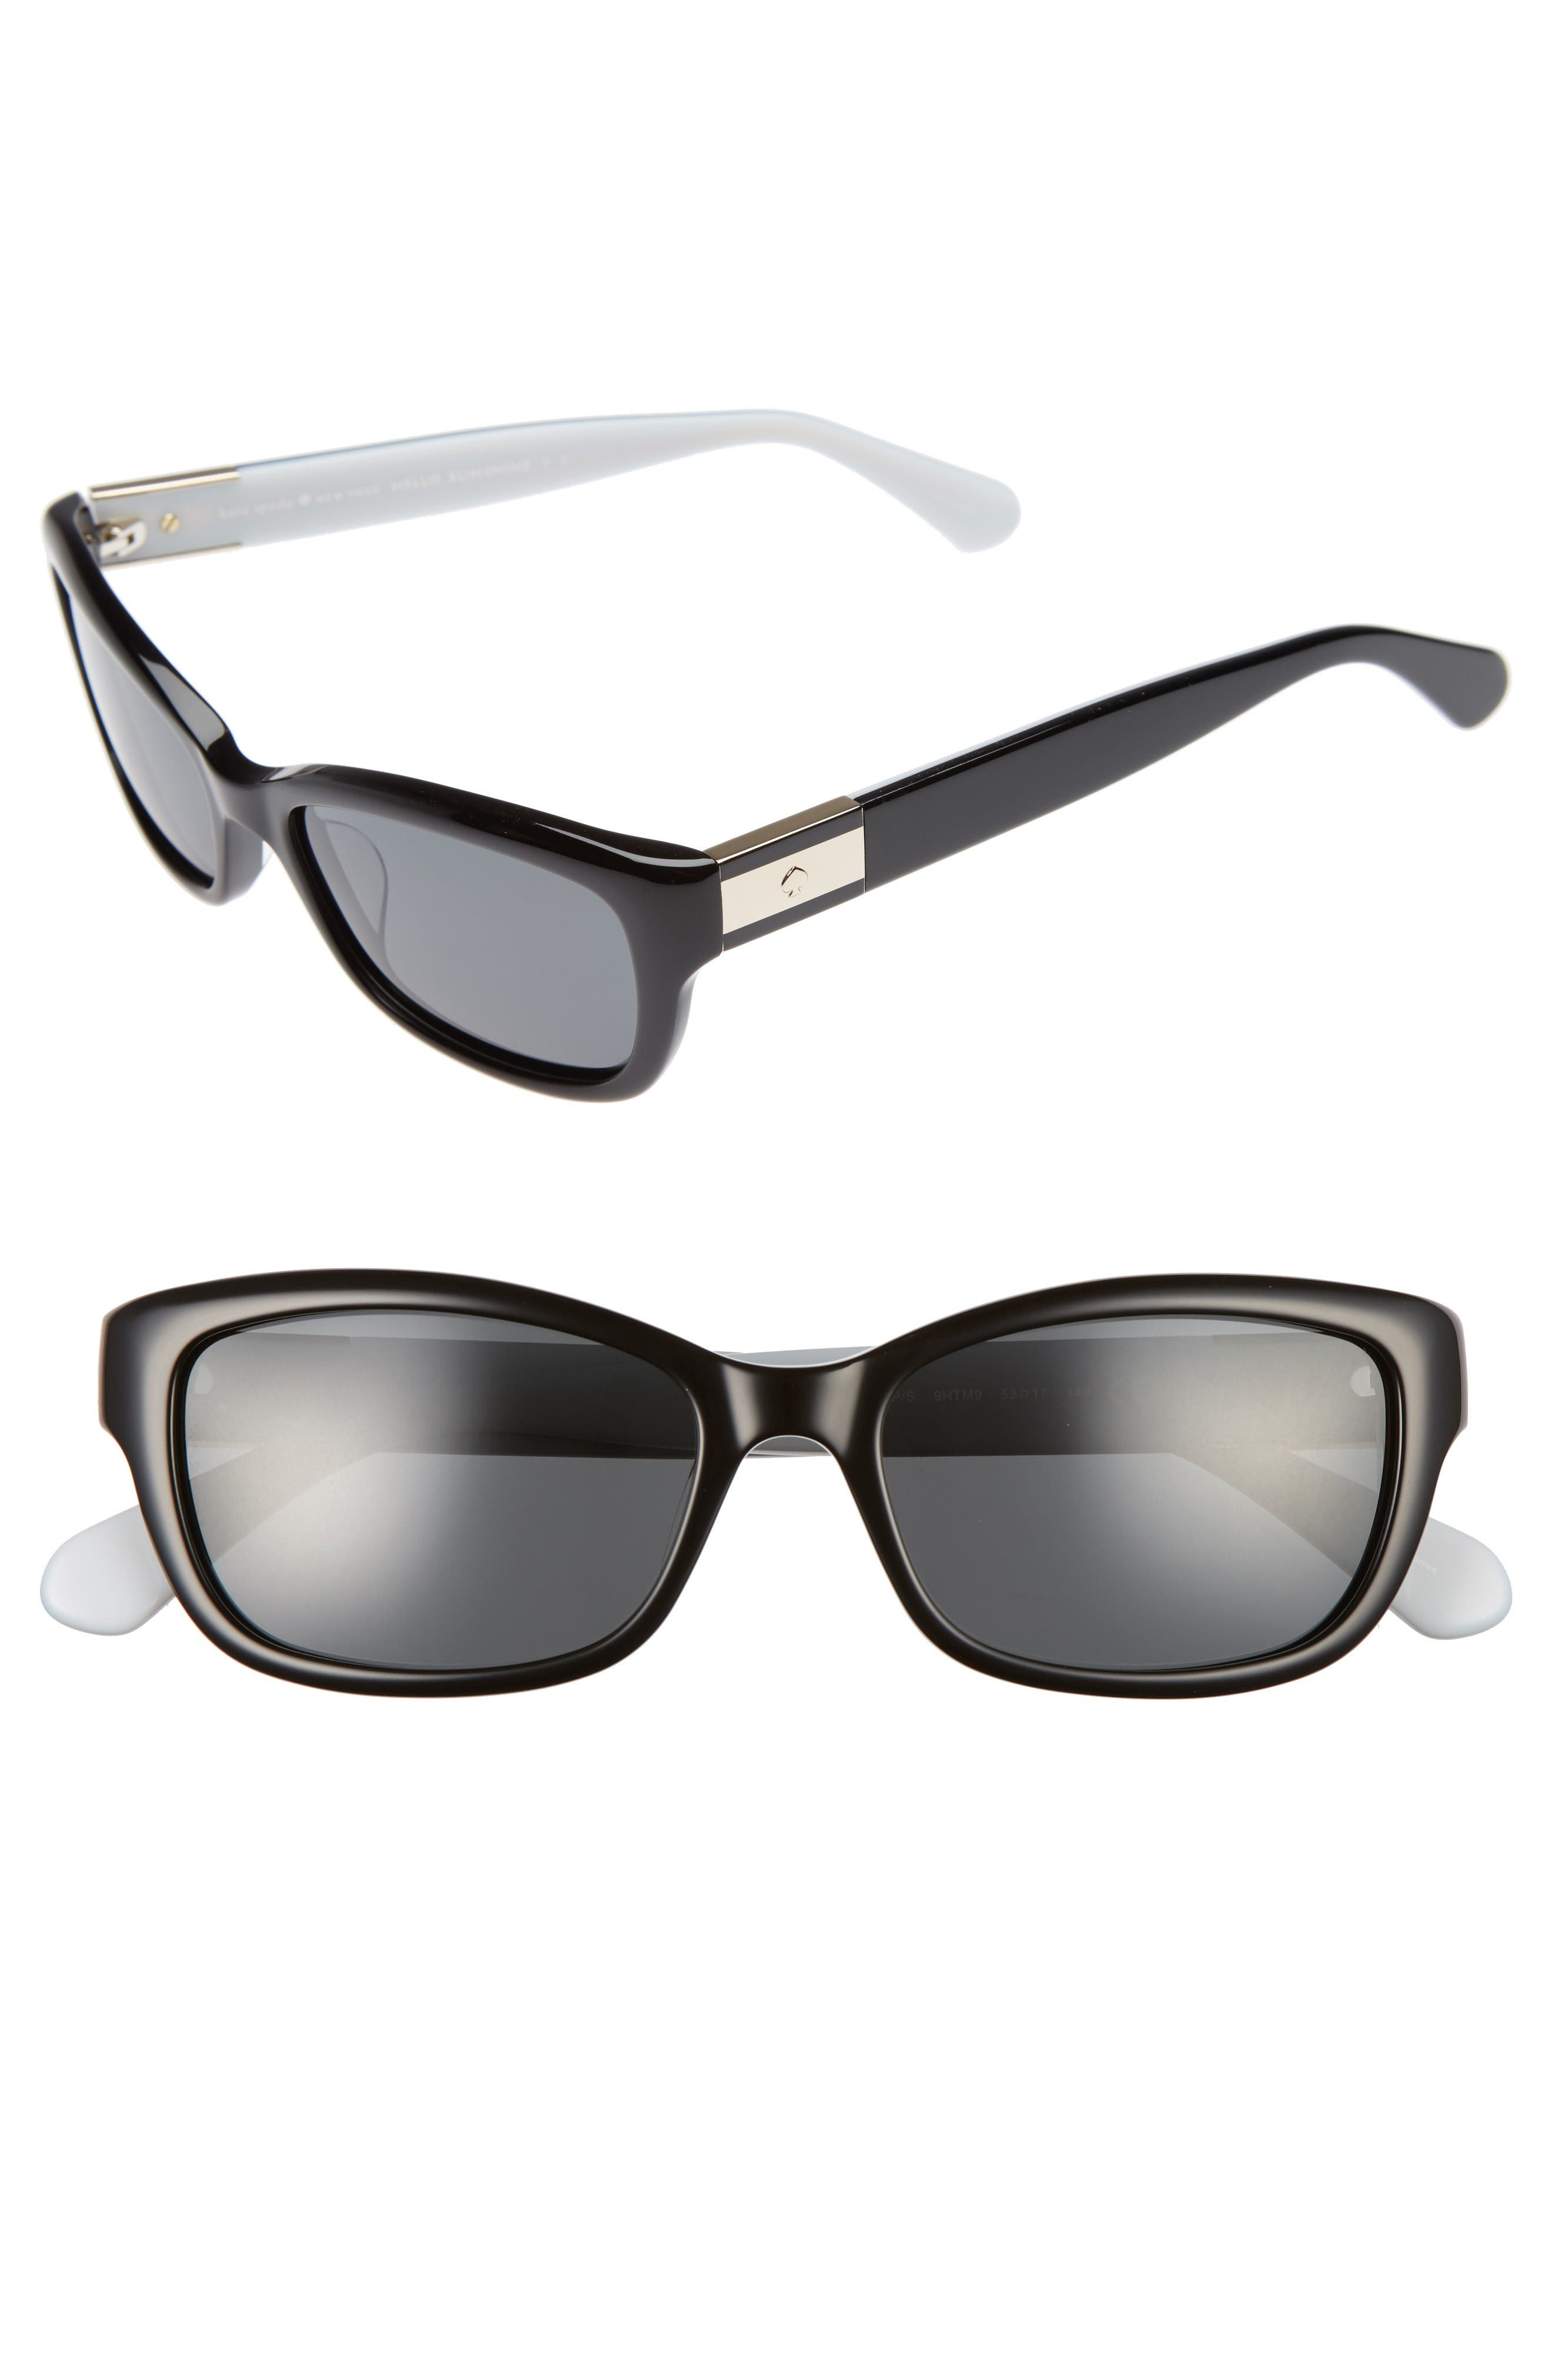 marilee 53mm Polarized Sunglasses,                             Main thumbnail 1, color,                             Black/ Ivory